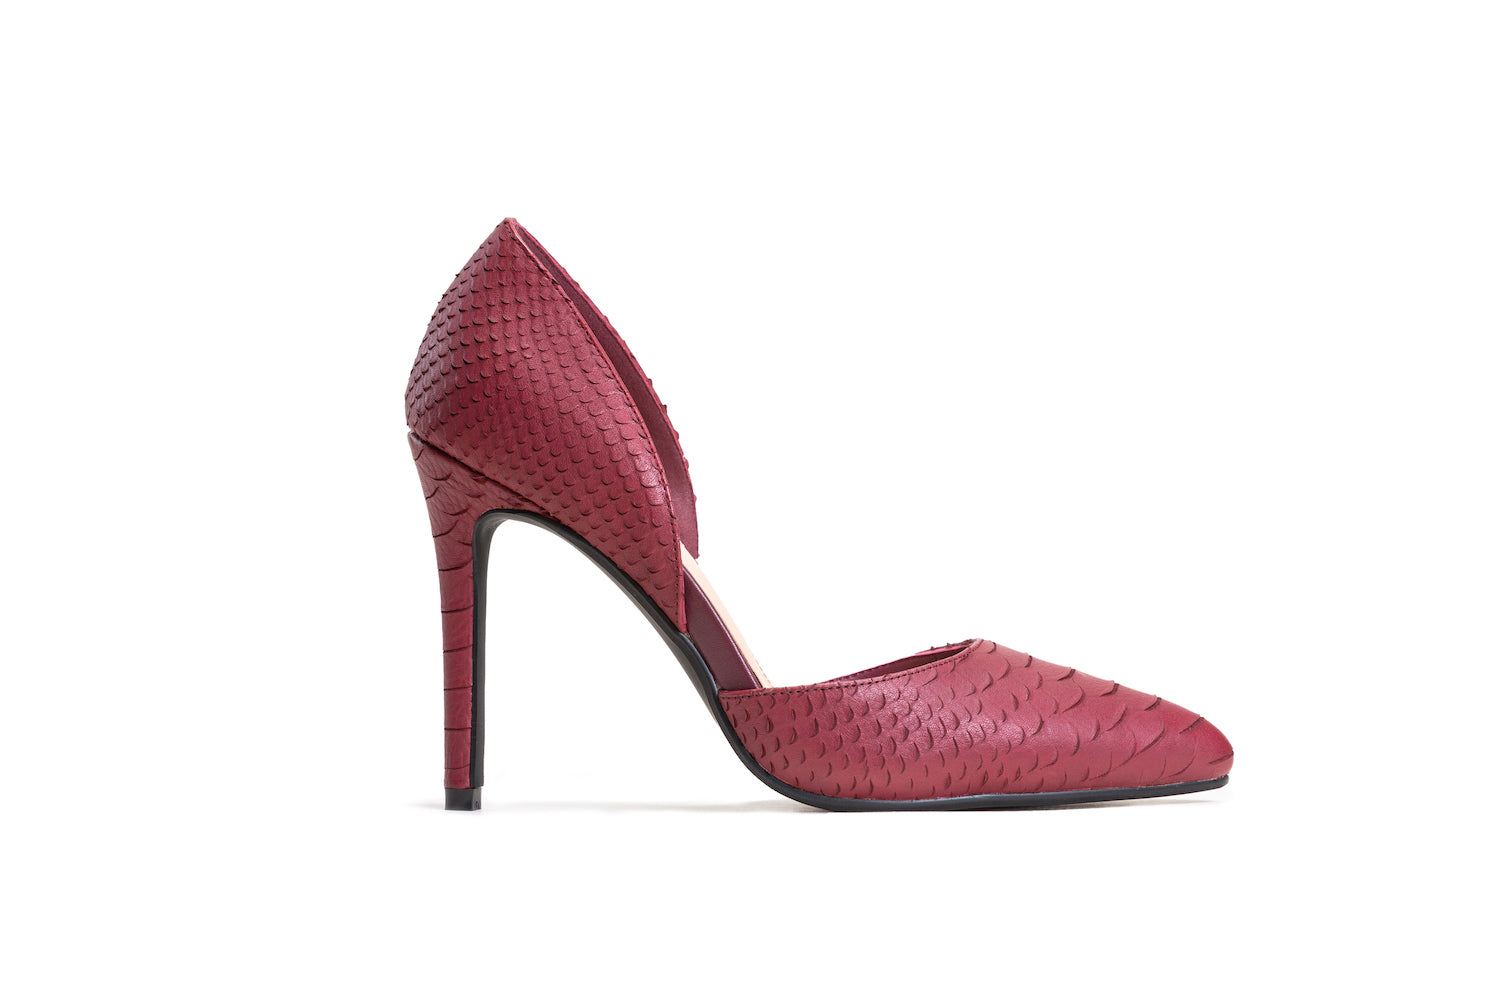 Red crocodile textured leather pumps